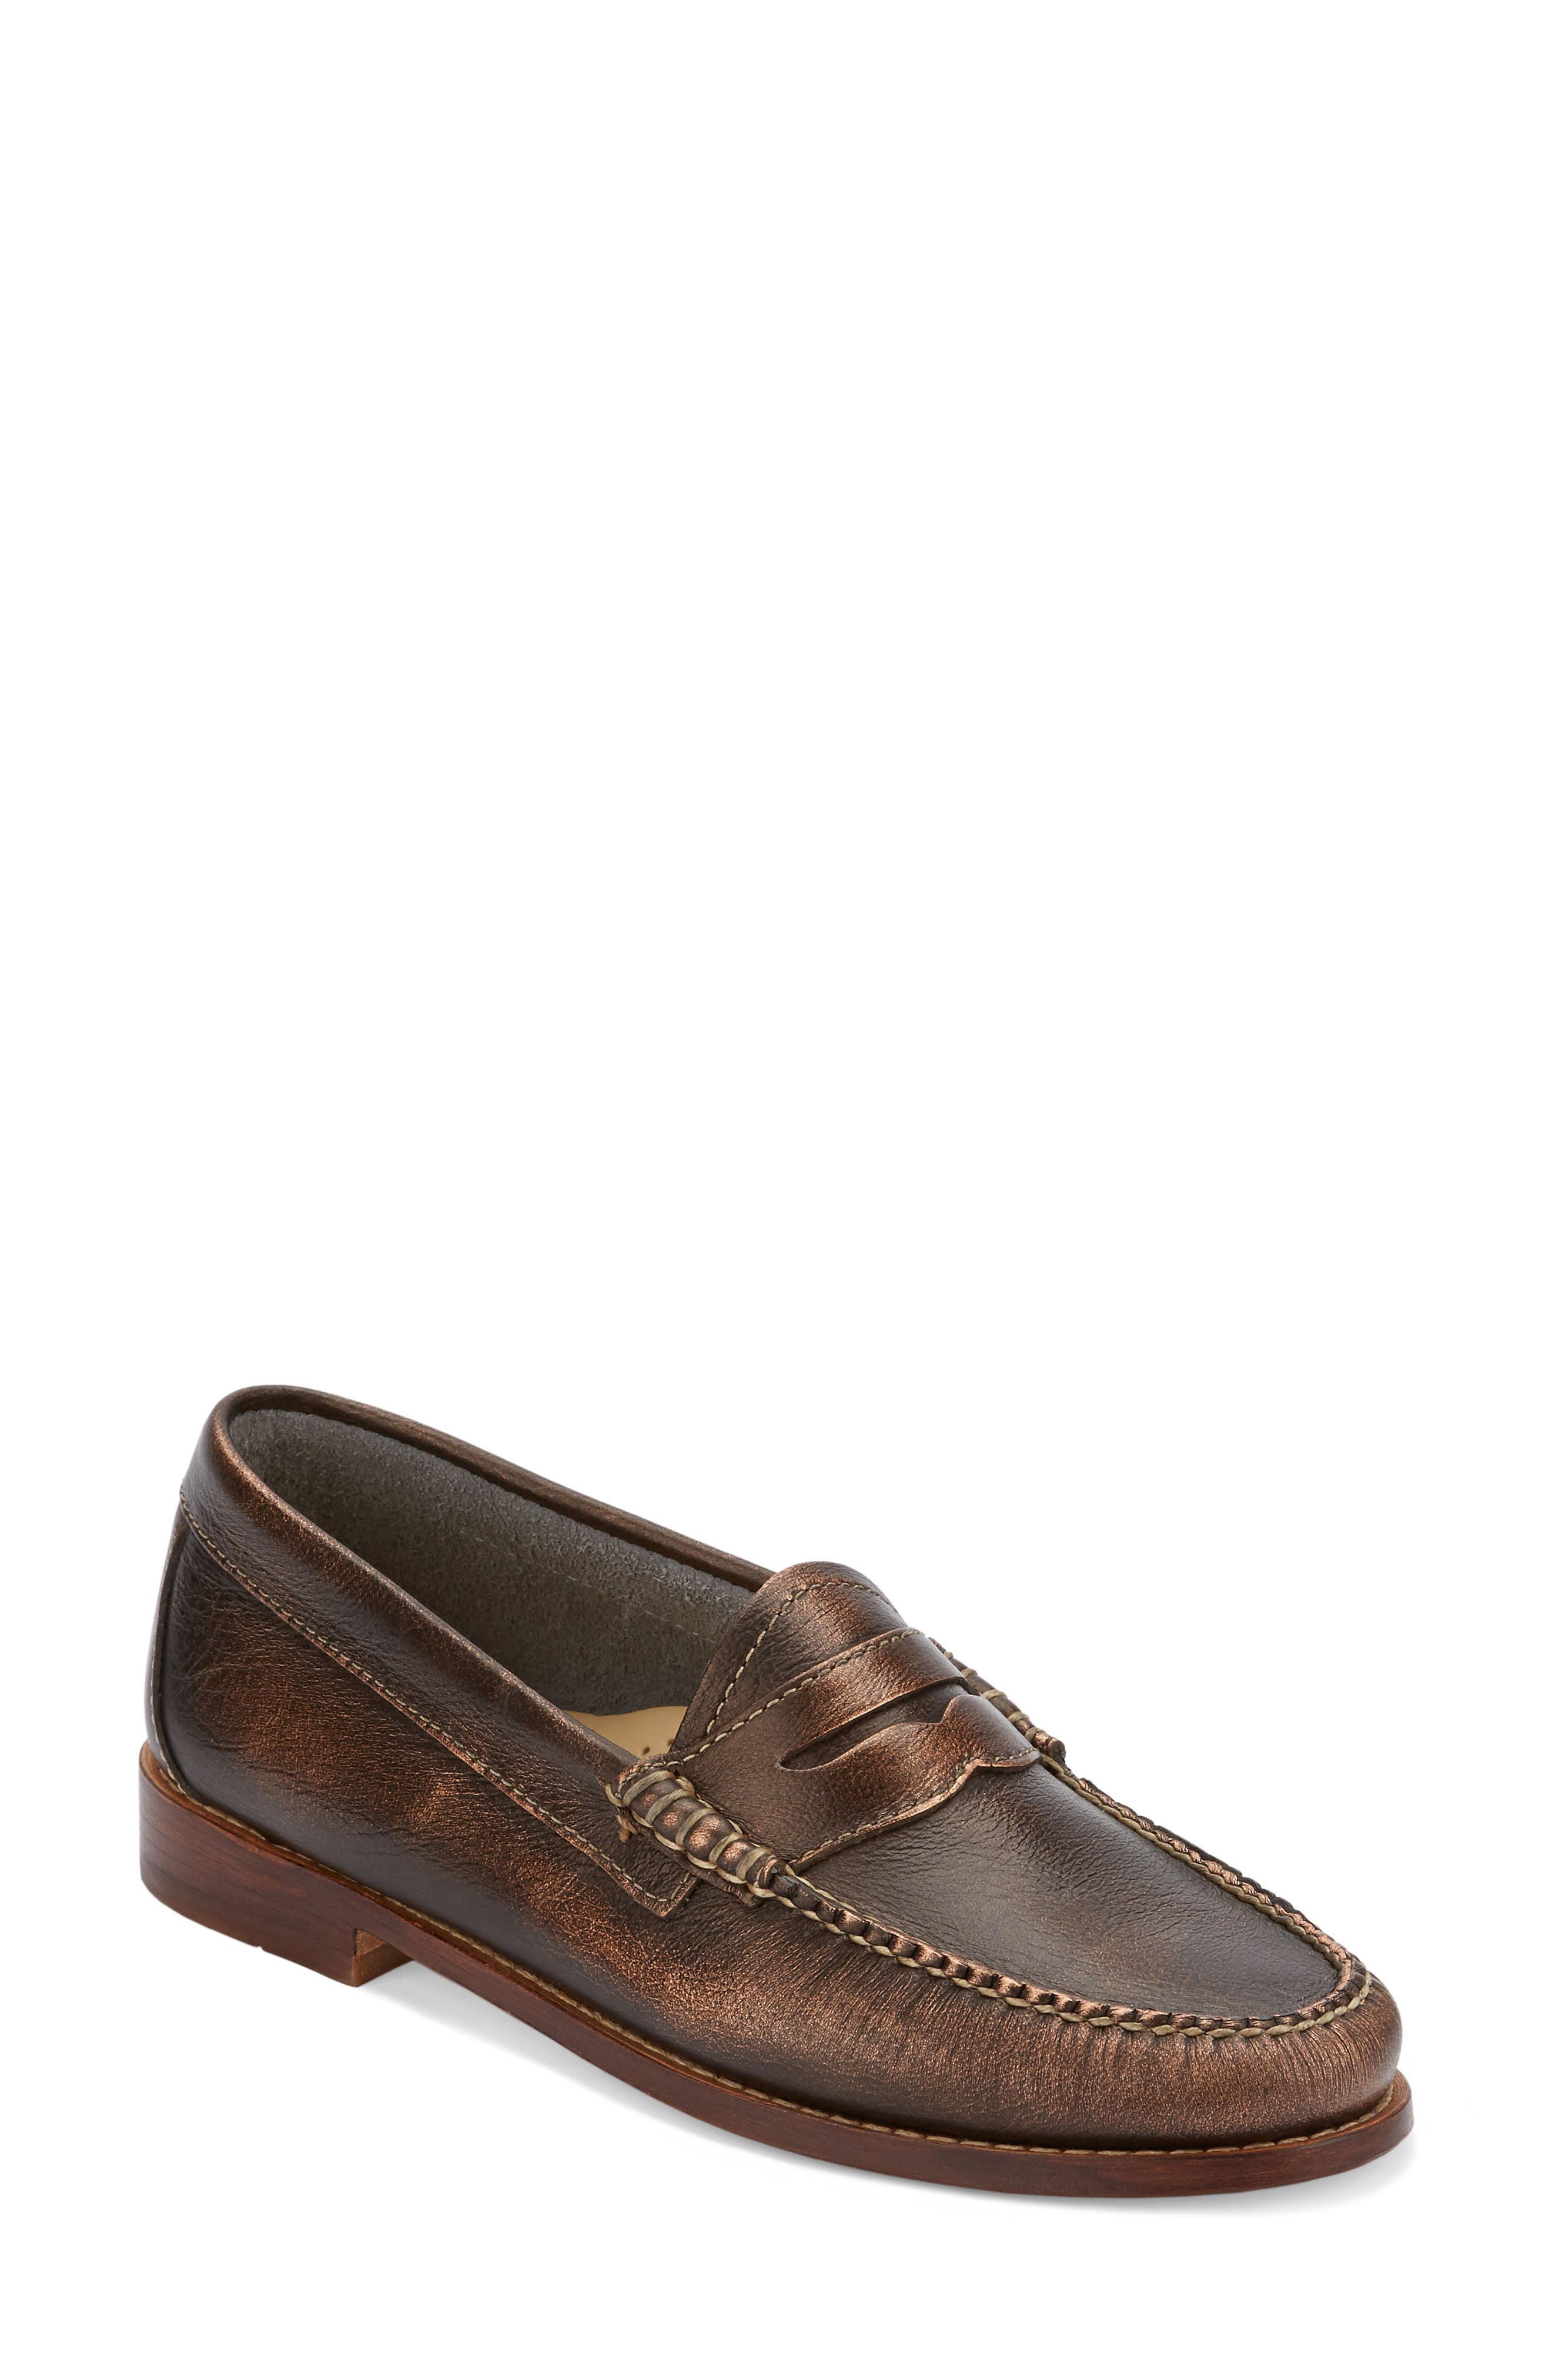 'Whitney' Loafer,                             Main thumbnail 6, color,